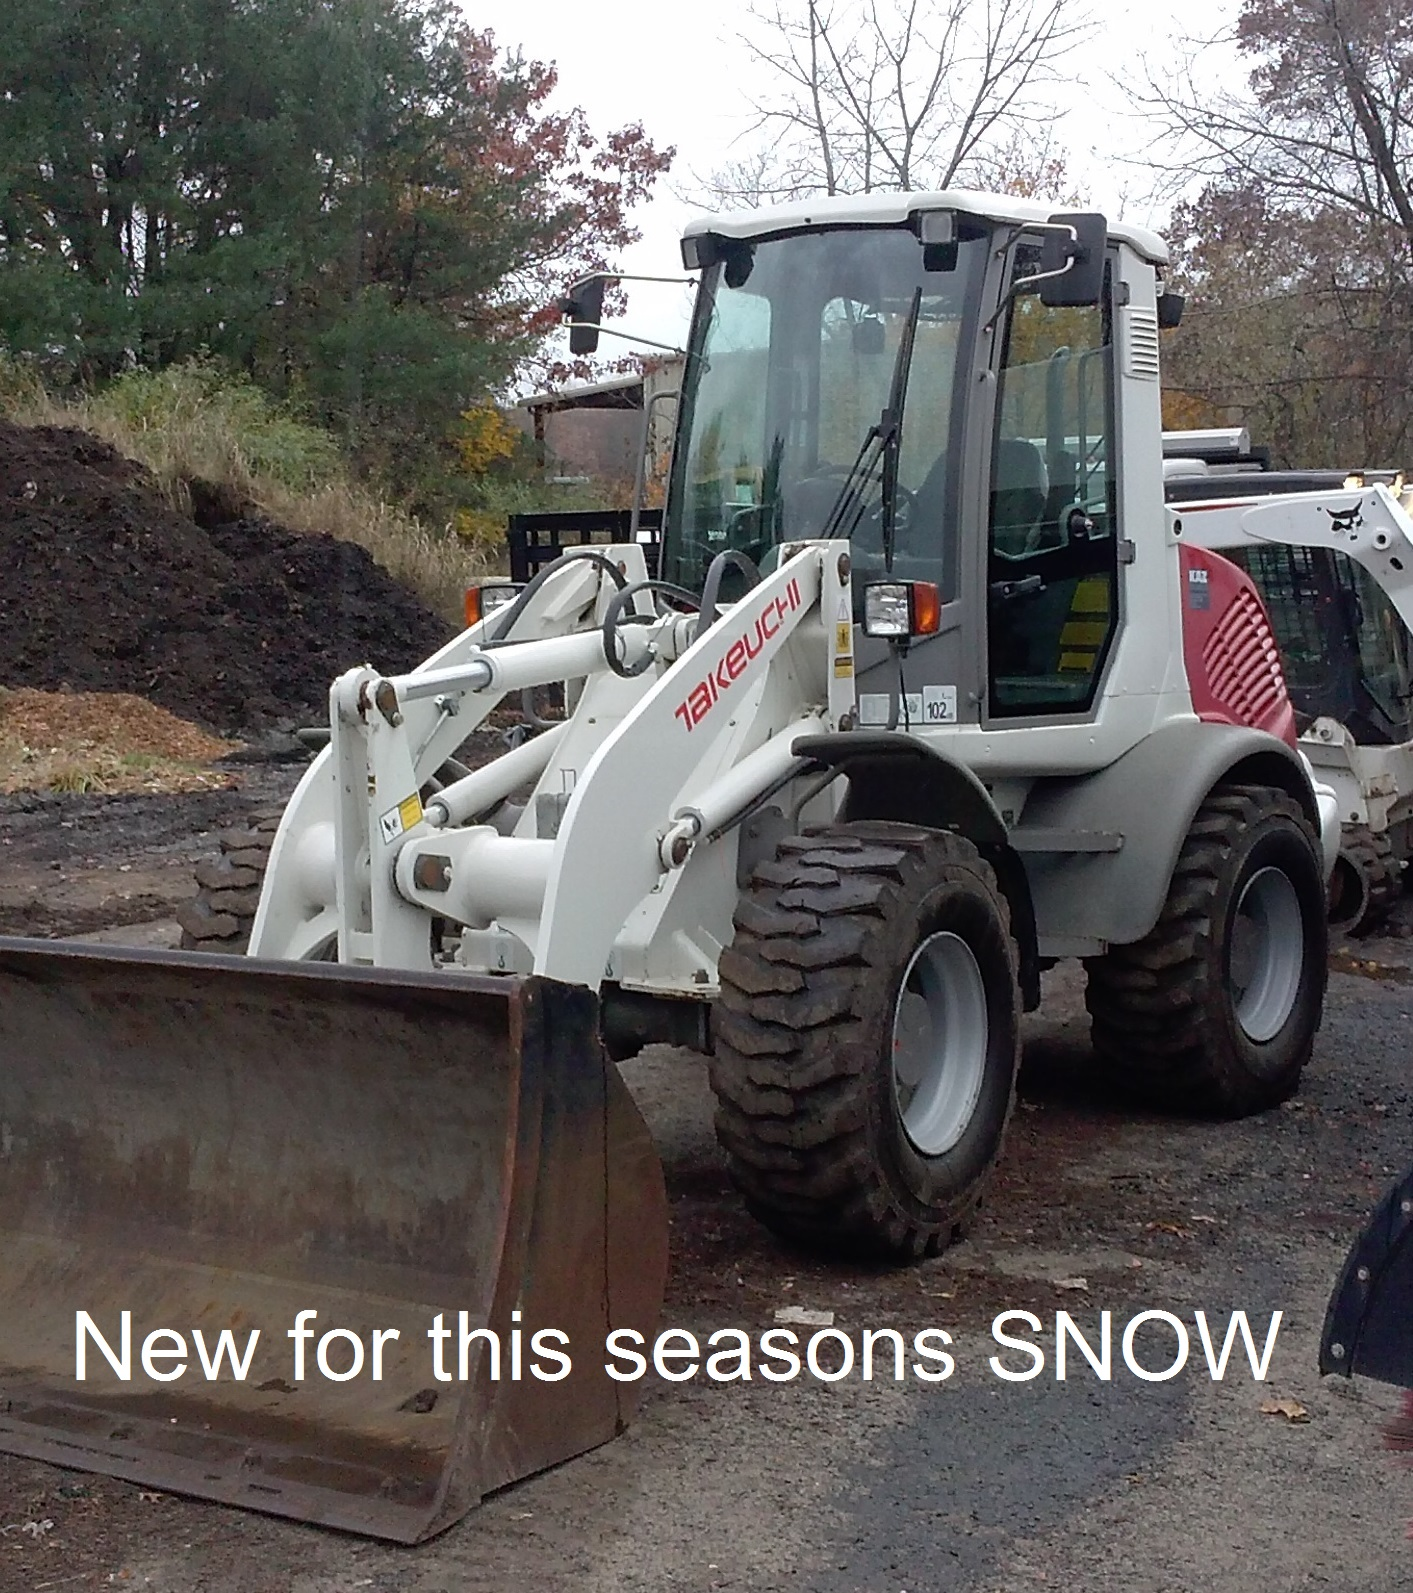 Commercial Snow Plowing Professional Snow Removal Snow Blowing Farmington Snow Removal for CT Snow Plowing  Avon Plainville Southington New Britain Central CT Greater Hartford